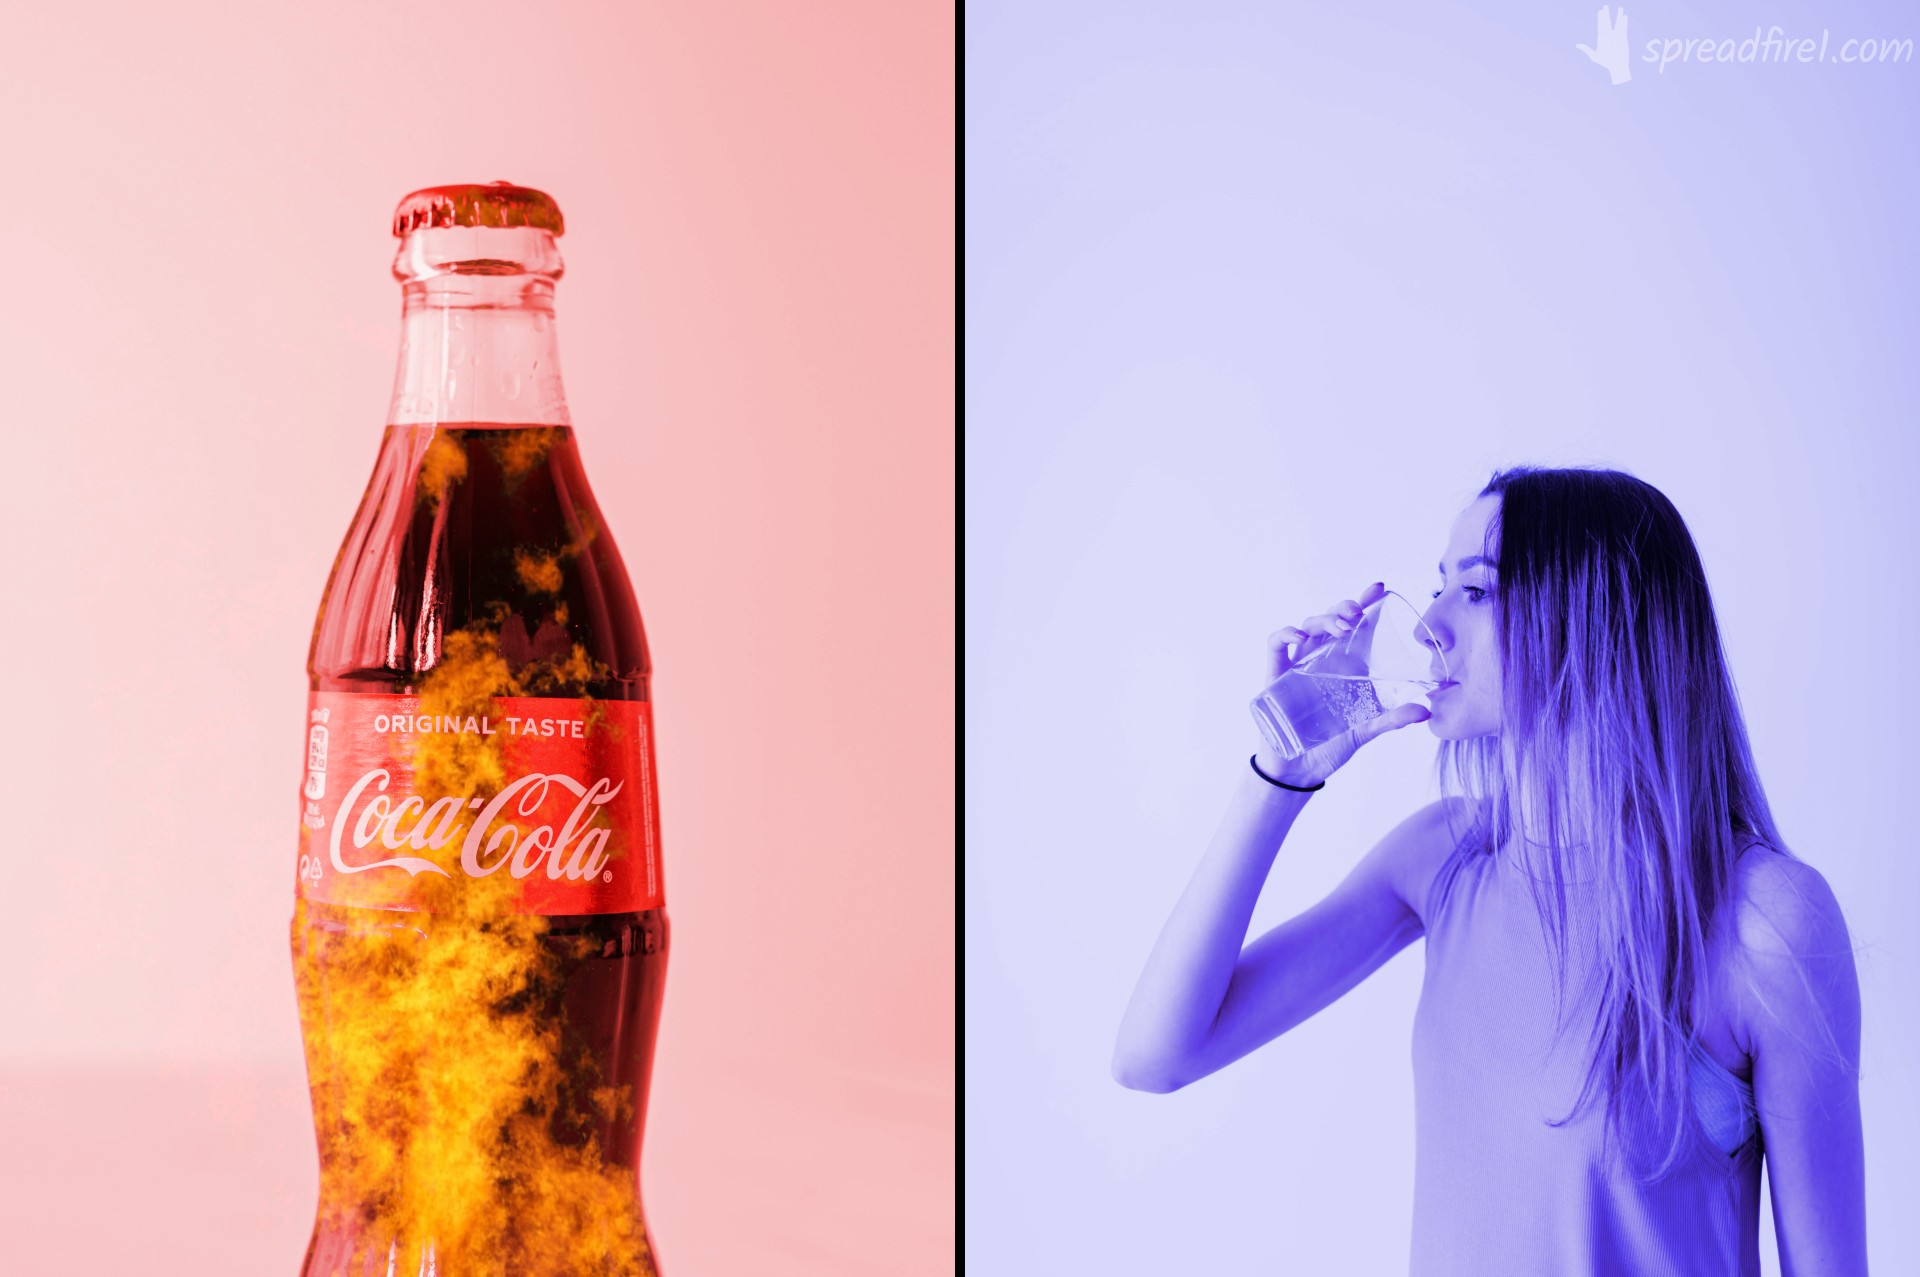 coke vs water. bad vices vs healthy habits. red burning coca cola bottle vs blue woman drinking water glass. spreadfire1.com